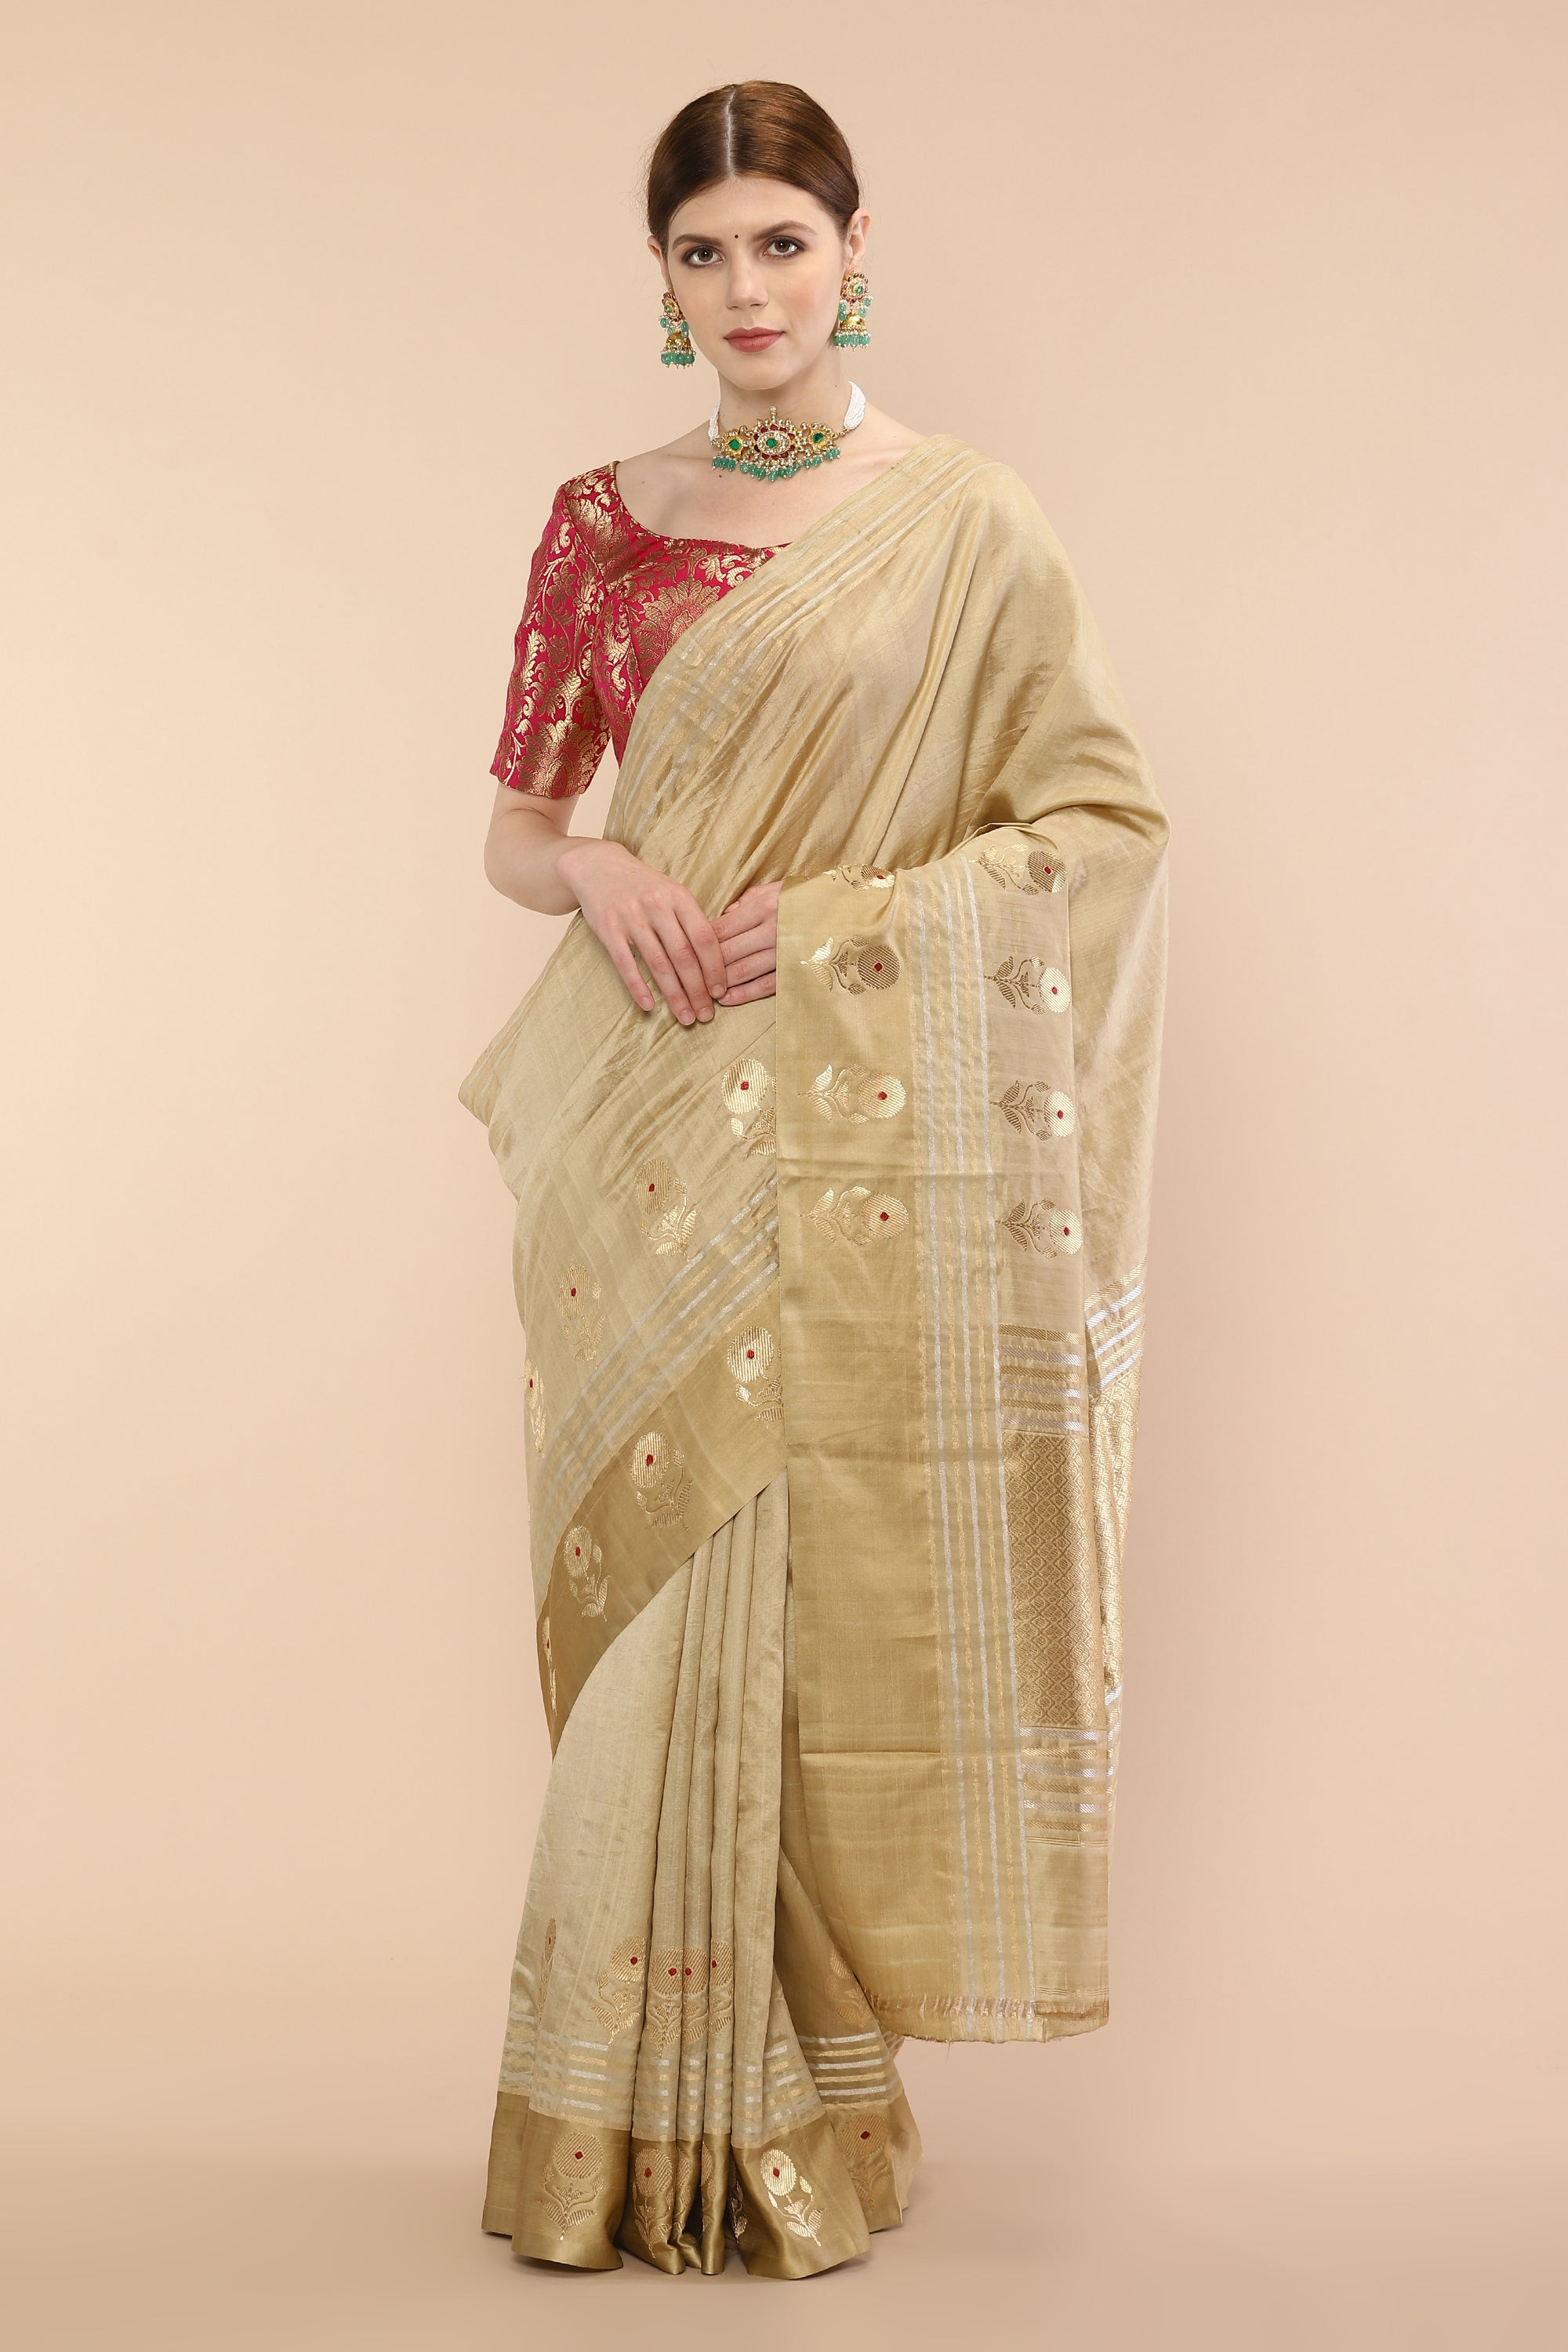 Handwoven Golden Beige Pure Silk Banarasi Saree with floral motifs